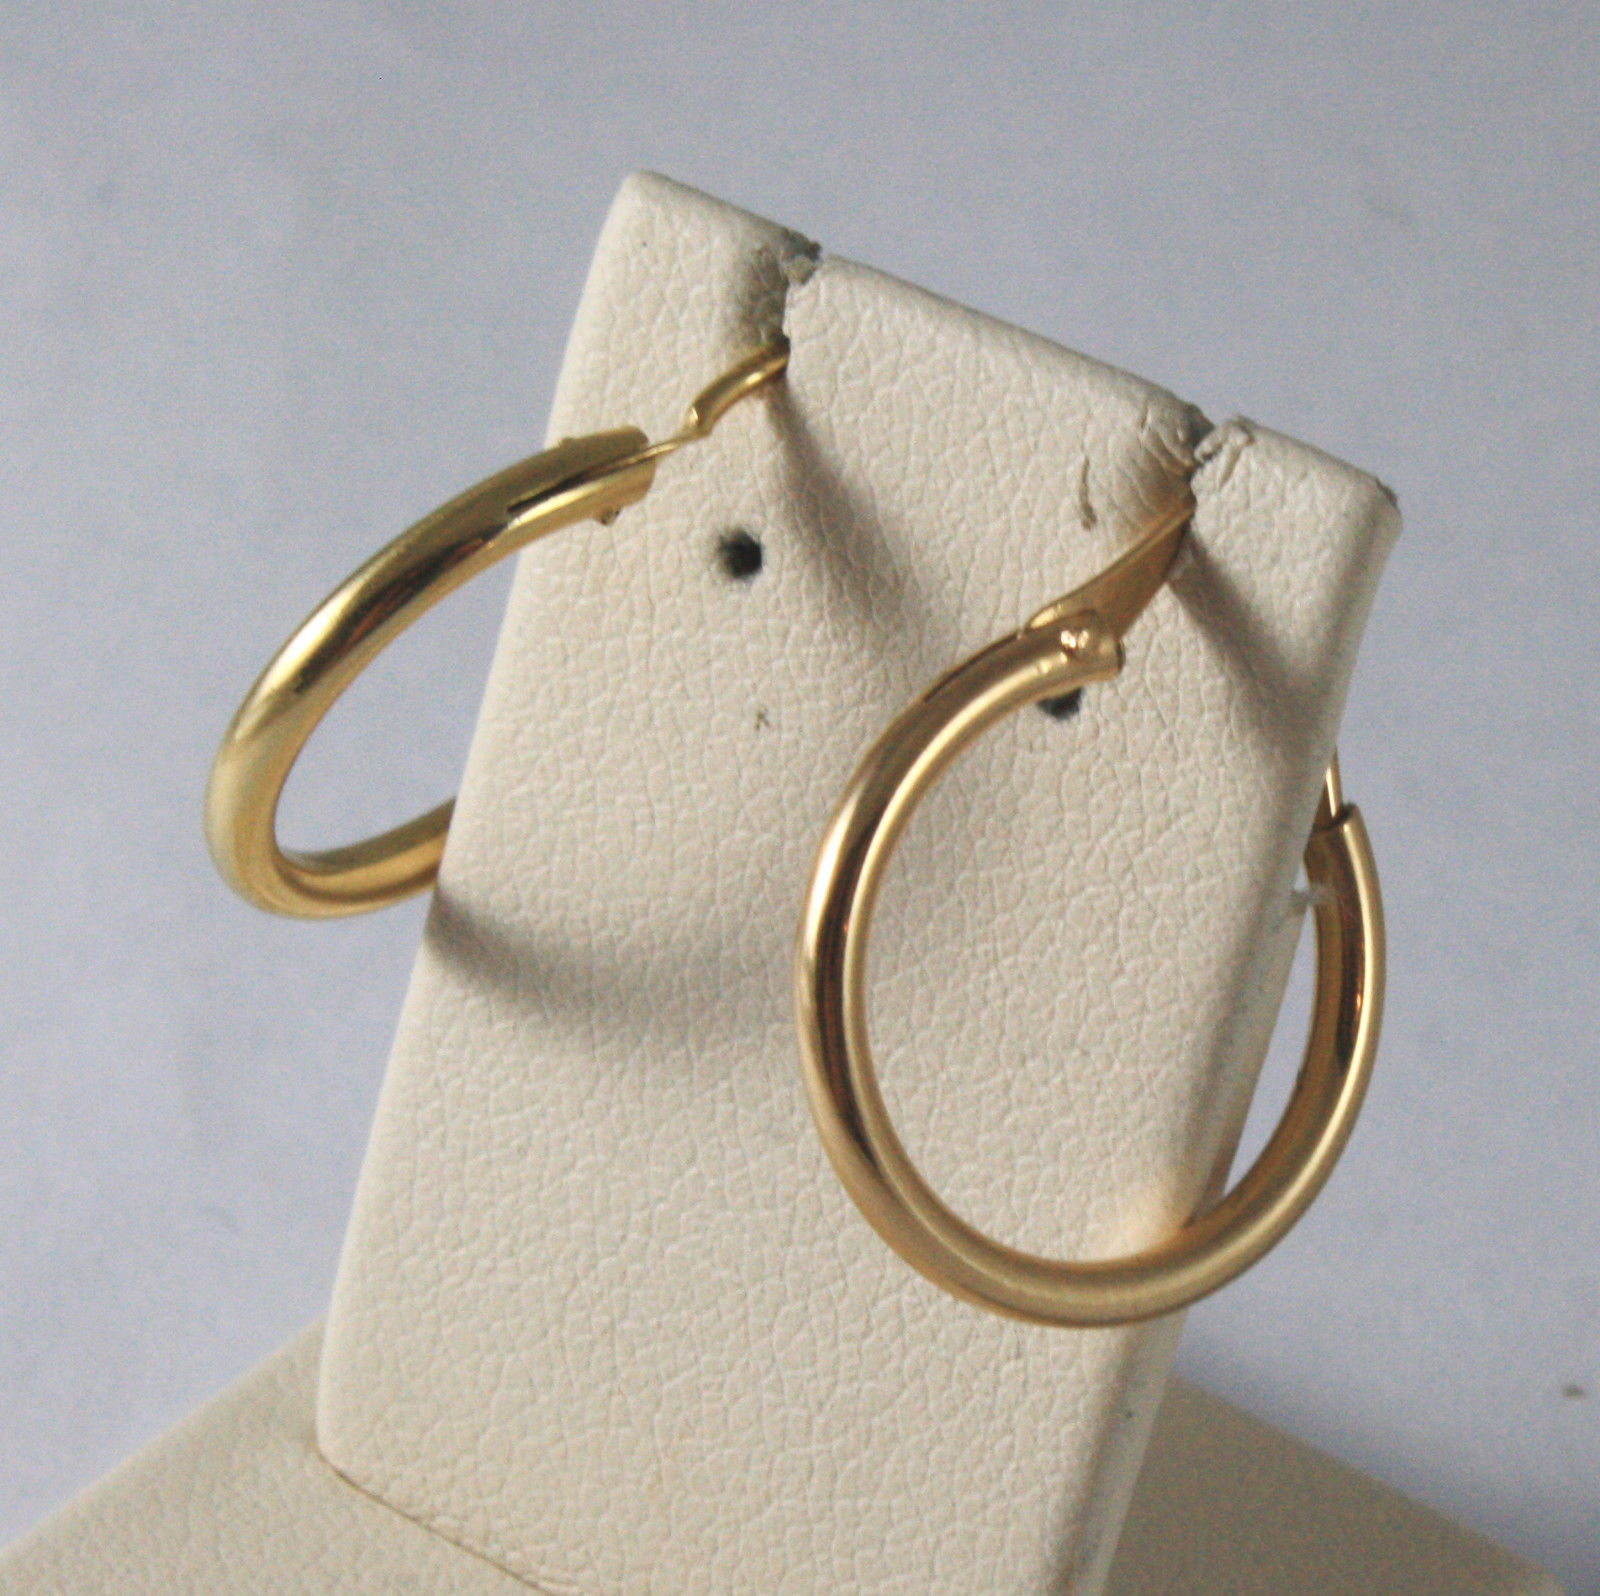 SOLID 18KT. YELLOW GOLD CIRCLE TUBE EARRINGS DIAMETER 0,67 IN MADE IN ITALY 18K